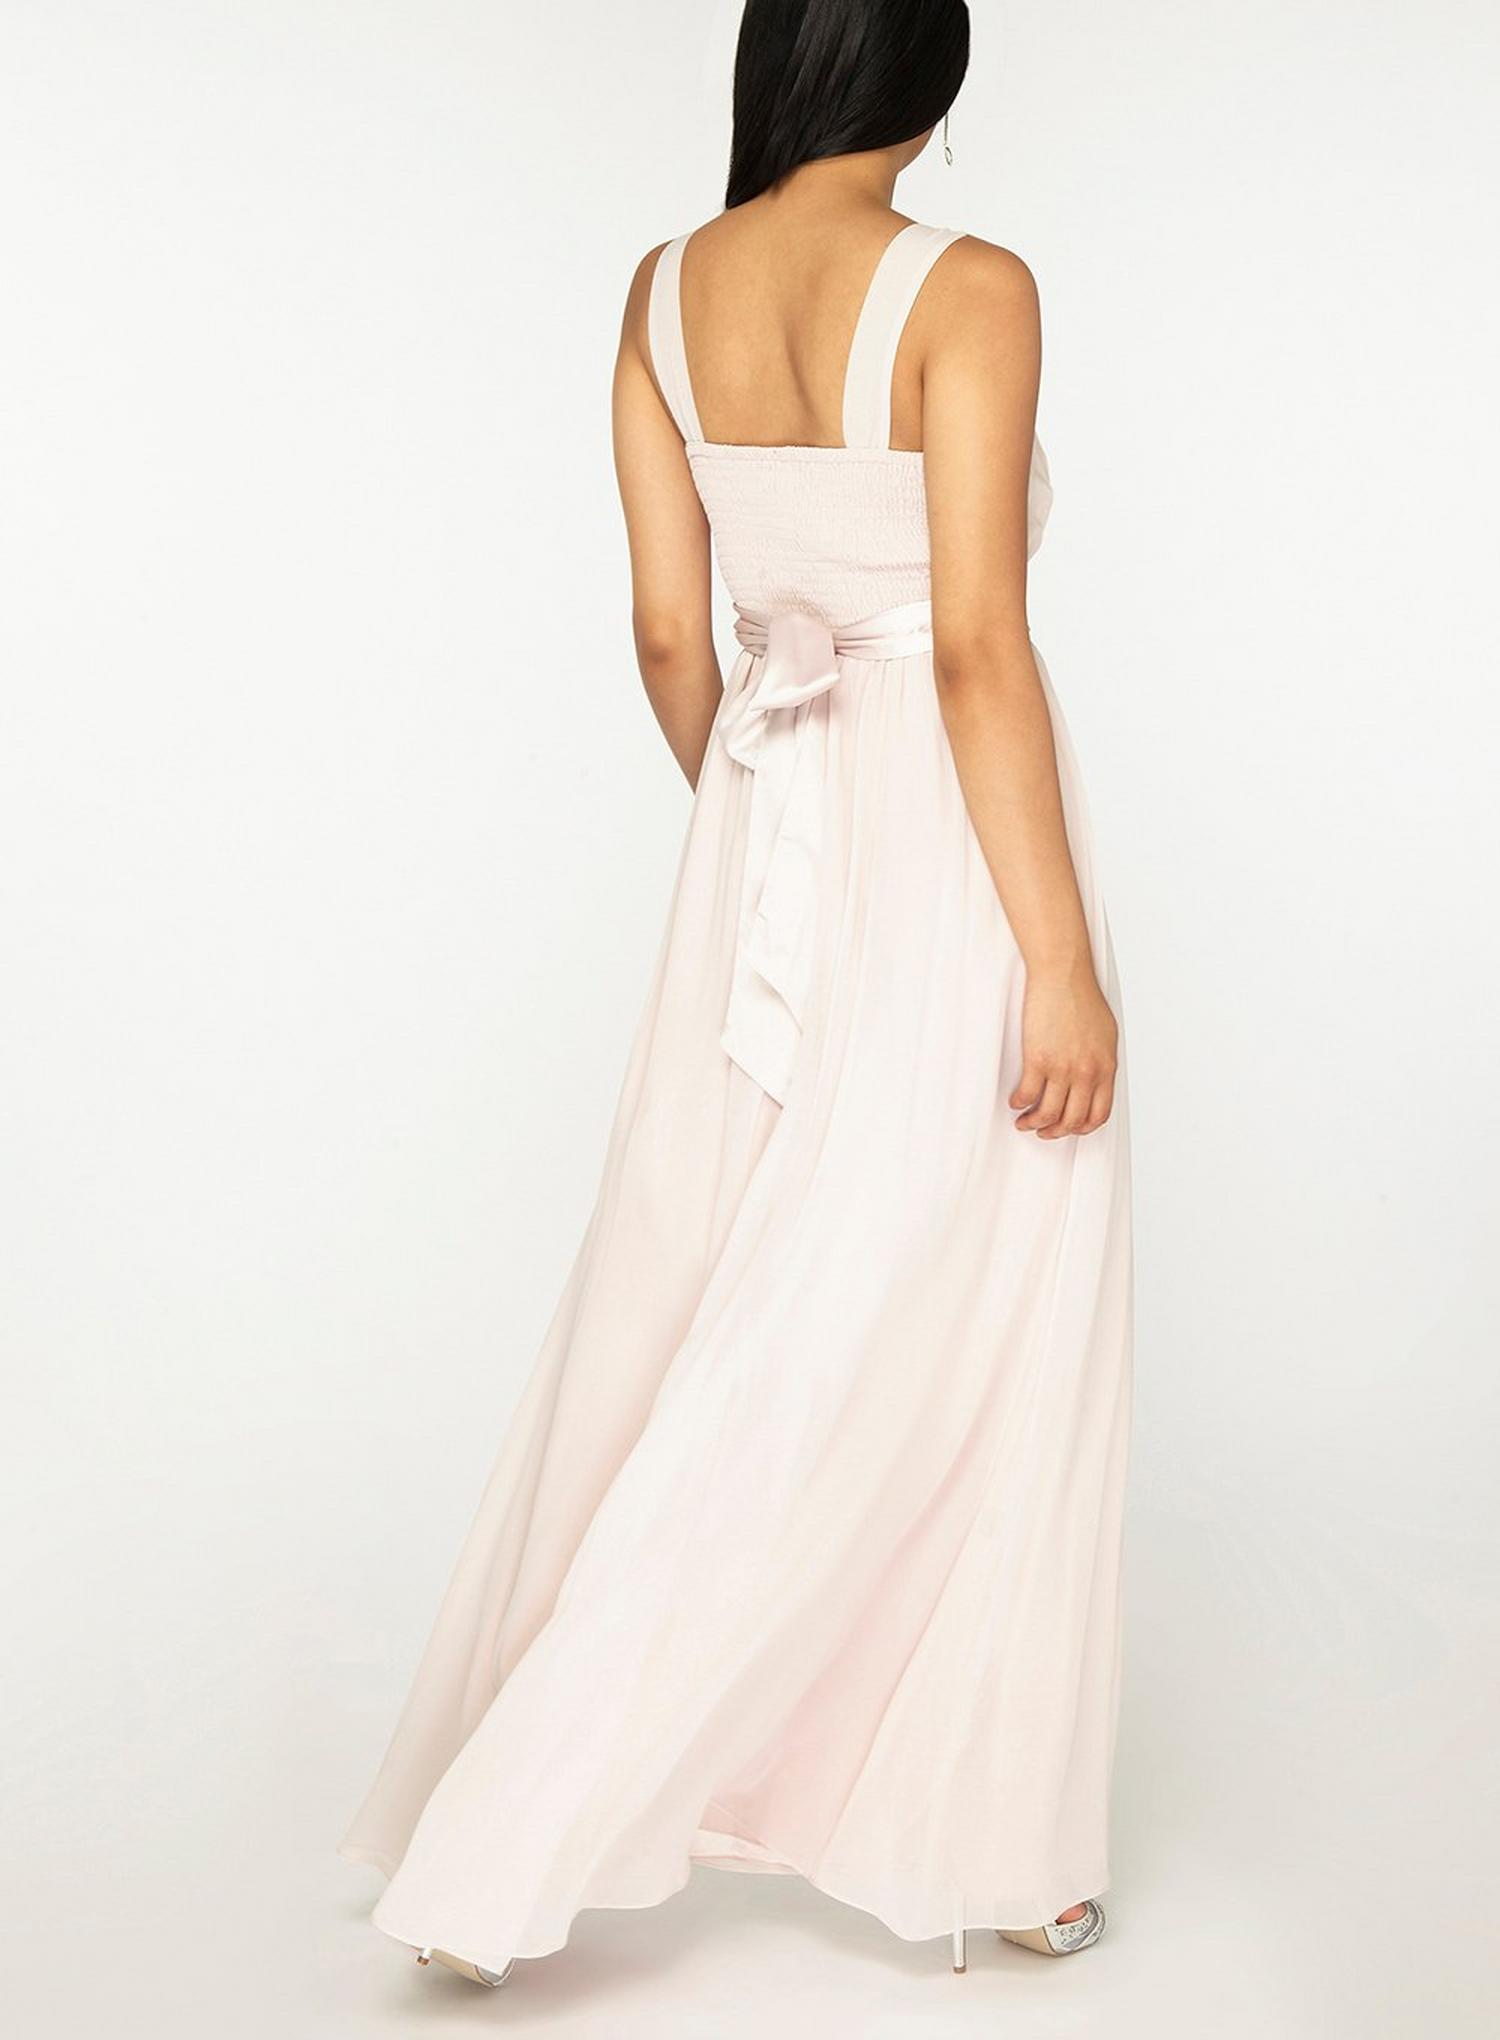 153 Petite Natalie Blush Maxi Dress image number 3